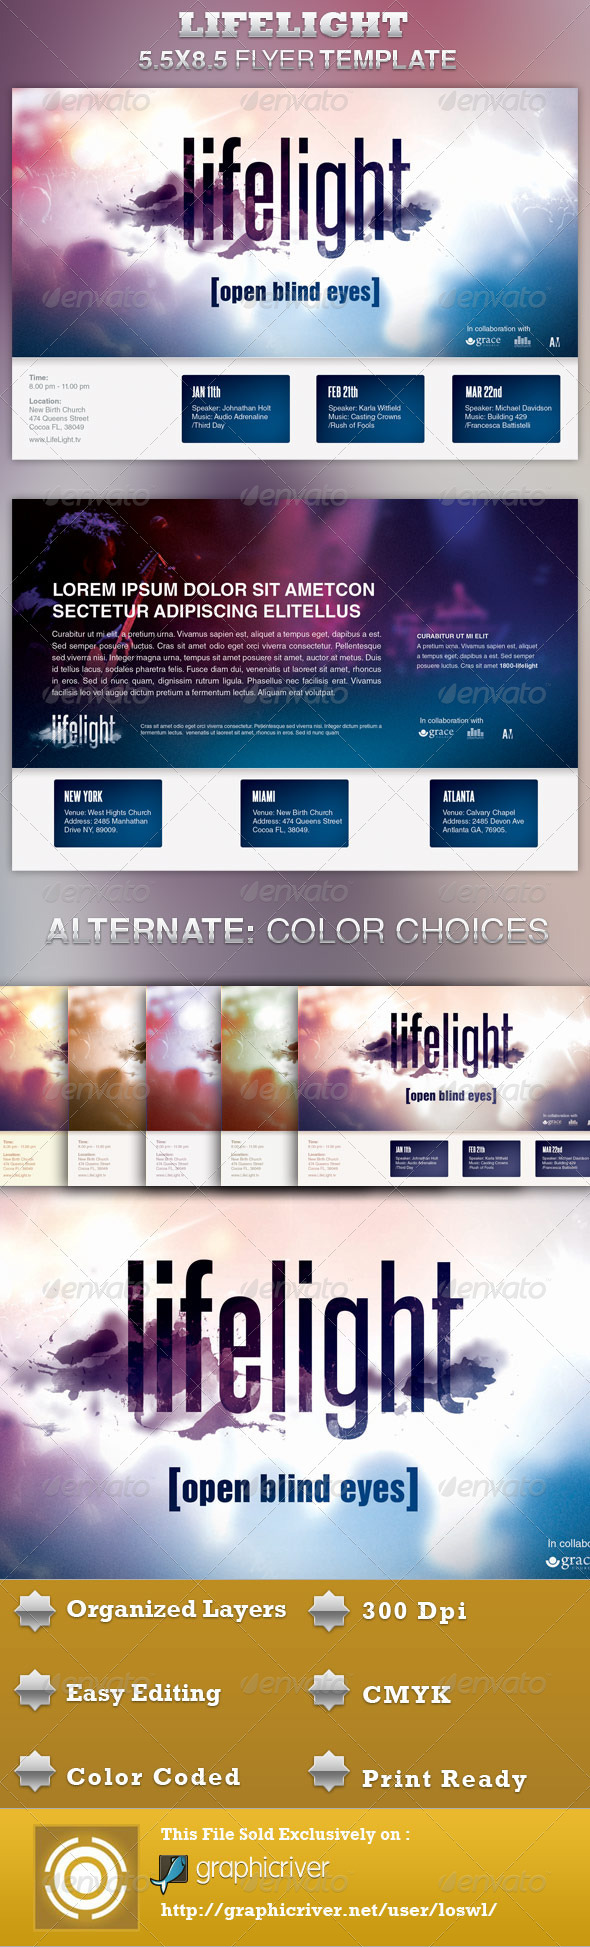 LifeLight Church Concert Flyer Template - Church Flyers